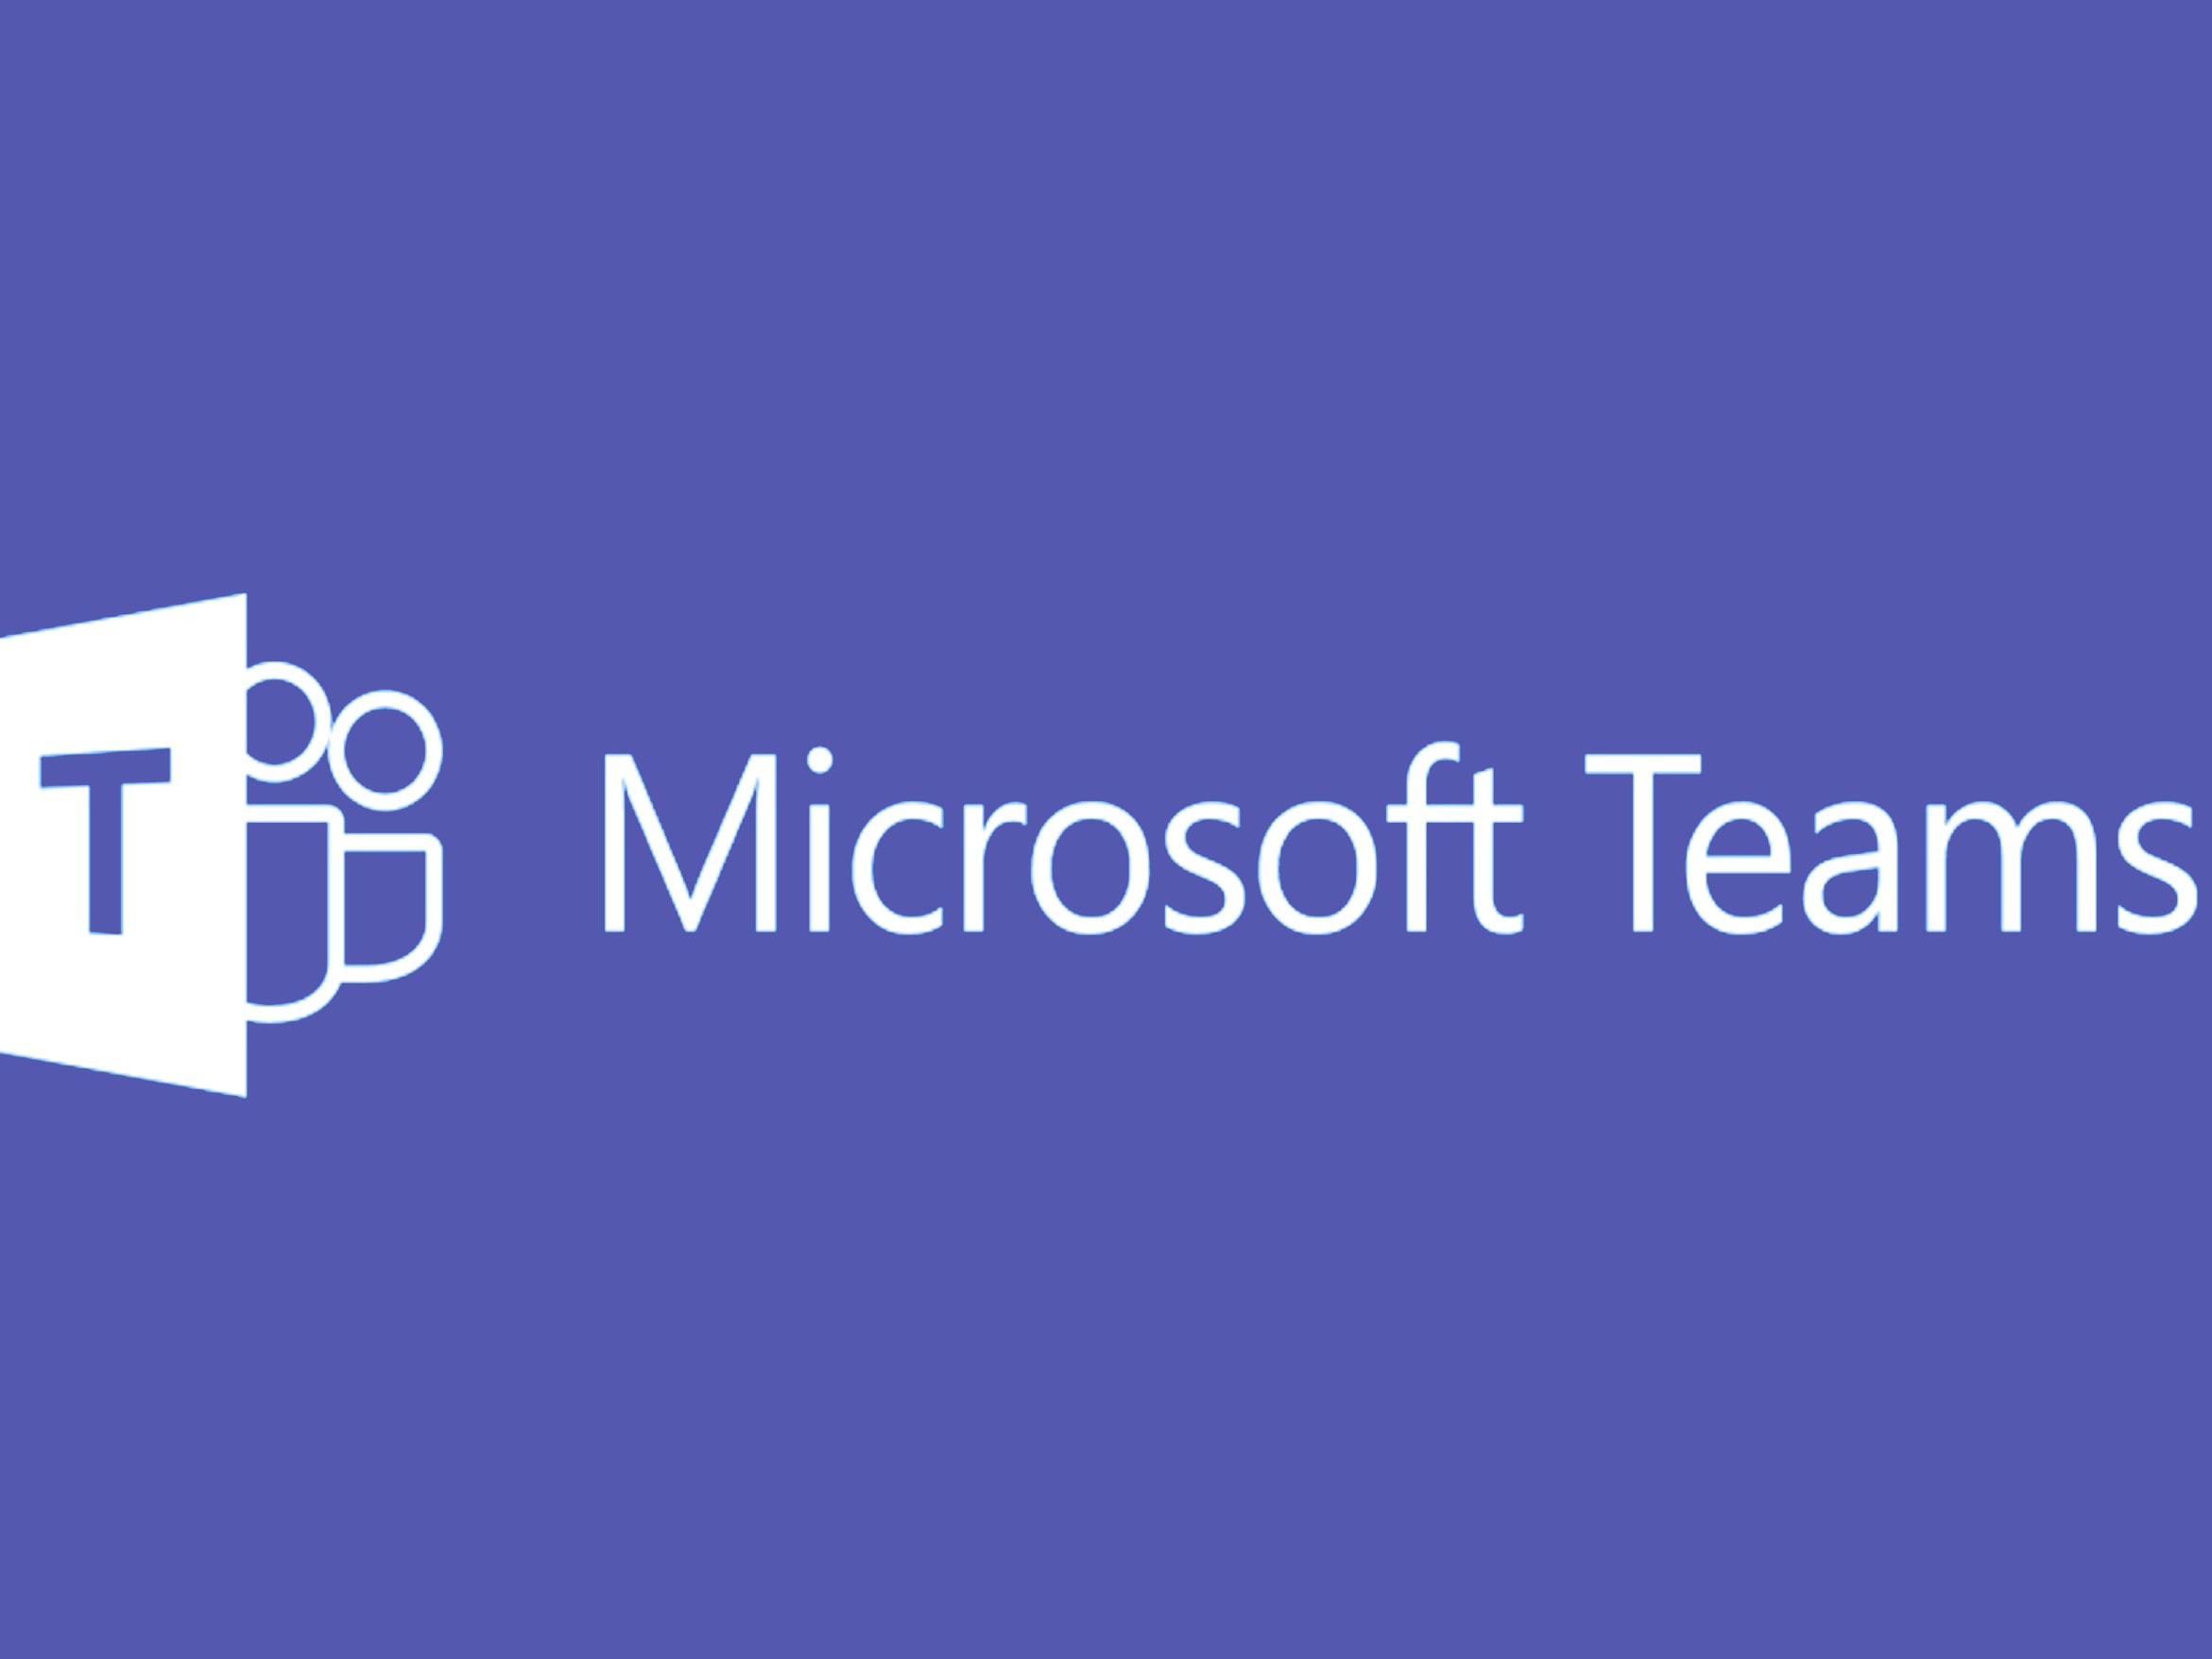 Microsoft Teams souhaite rendre les réunions plus conviviales